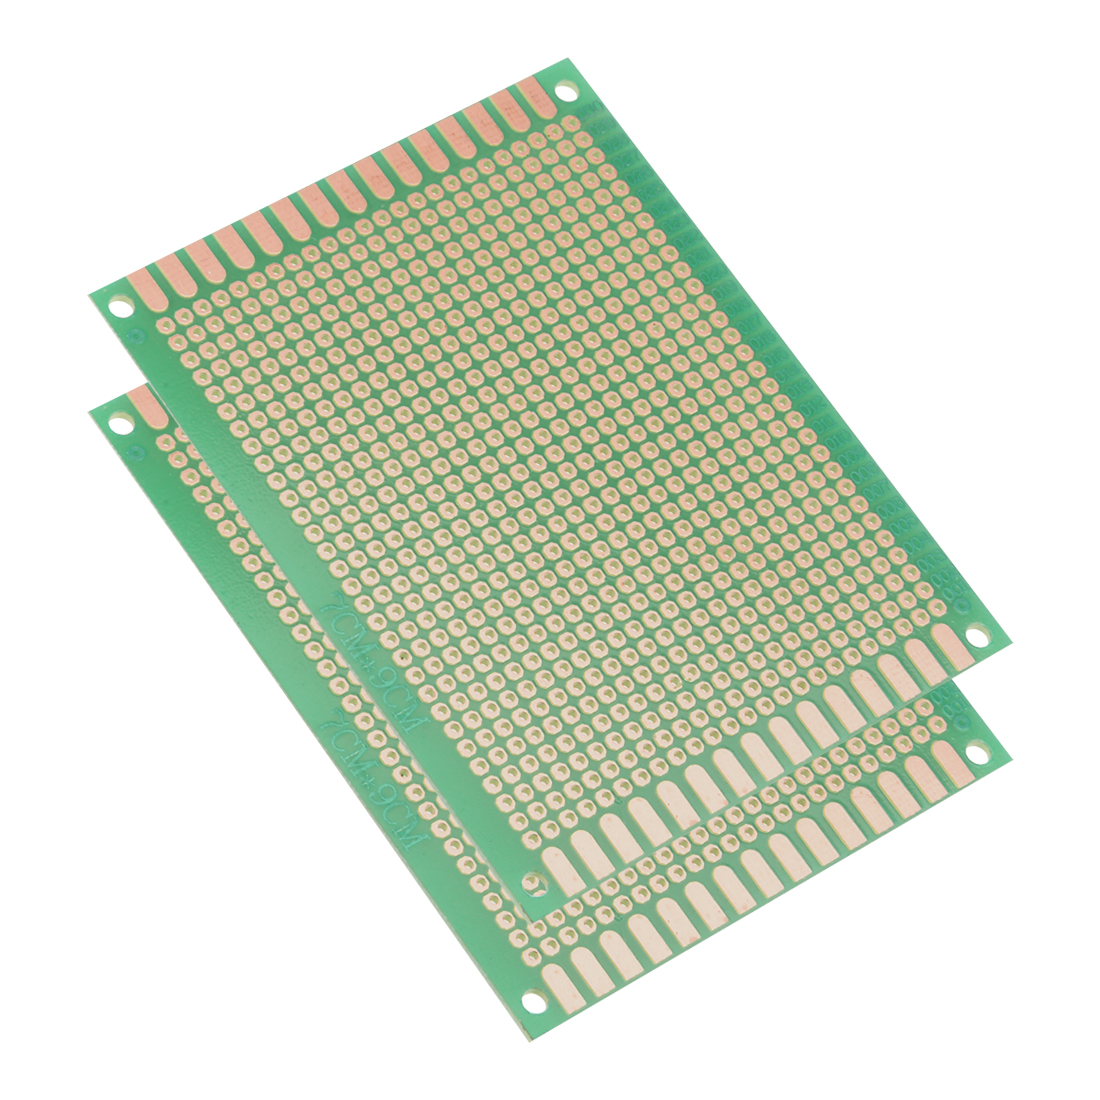 7x9cm Single Sided Universal Printed Circuit Board for DIY Soldering 2pcs